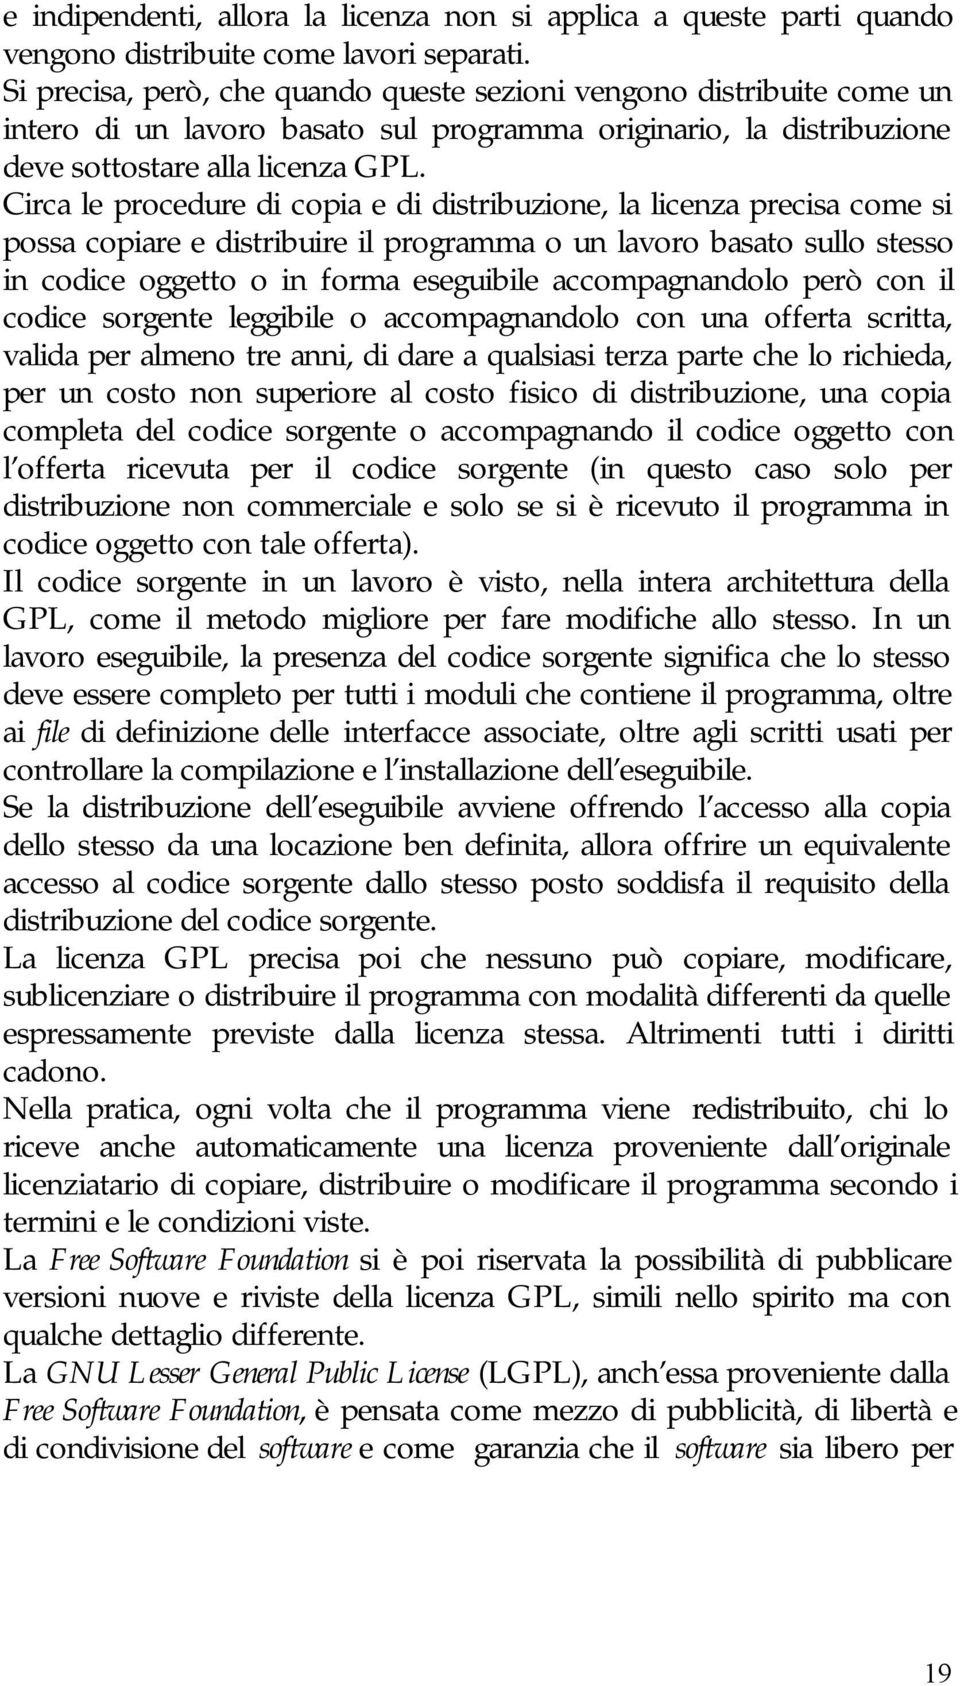 Circa le procedure di copia e di distribuzione, la licenza precisa come si possa copiare e distribuire il programma o un lavoro basato sullo stesso in codice oggetto o in forma eseguibile